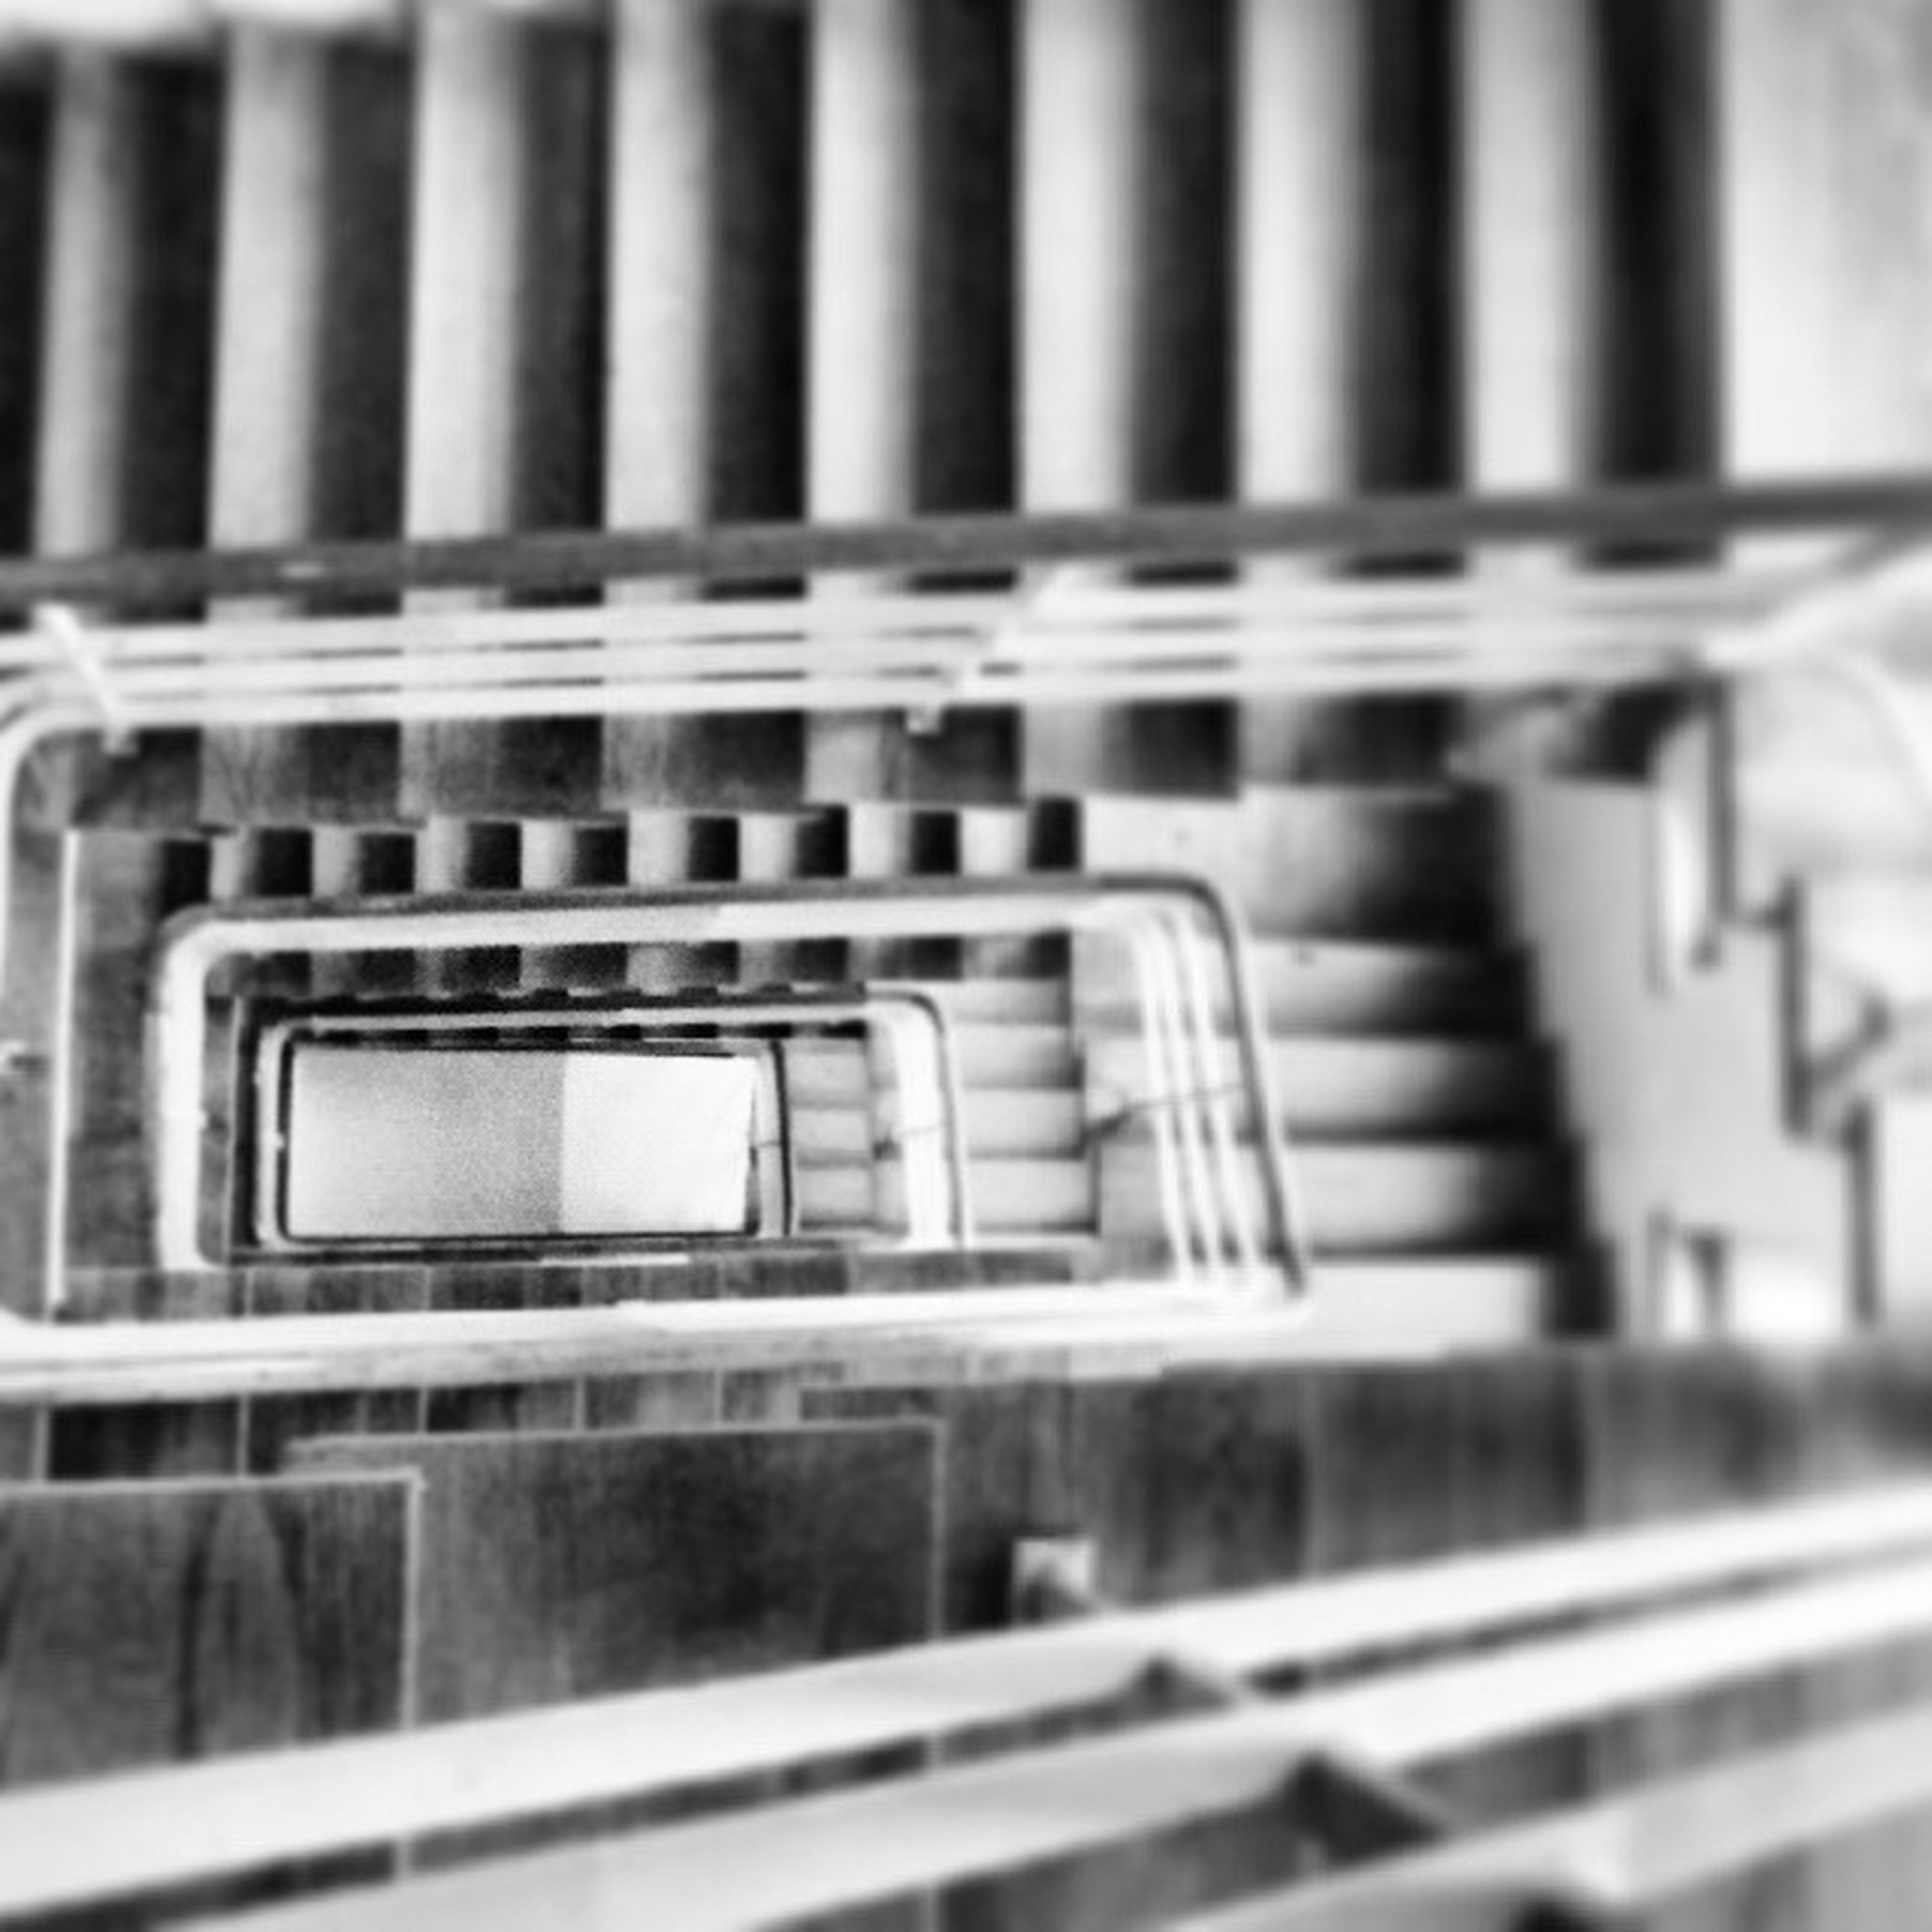 railing, built structure, architecture, steps, building exterior, metal, steps and staircases, close-up, selective focus, staircase, indoors, window, reflection, focus on foreground, no people, building, day, pattern, metallic